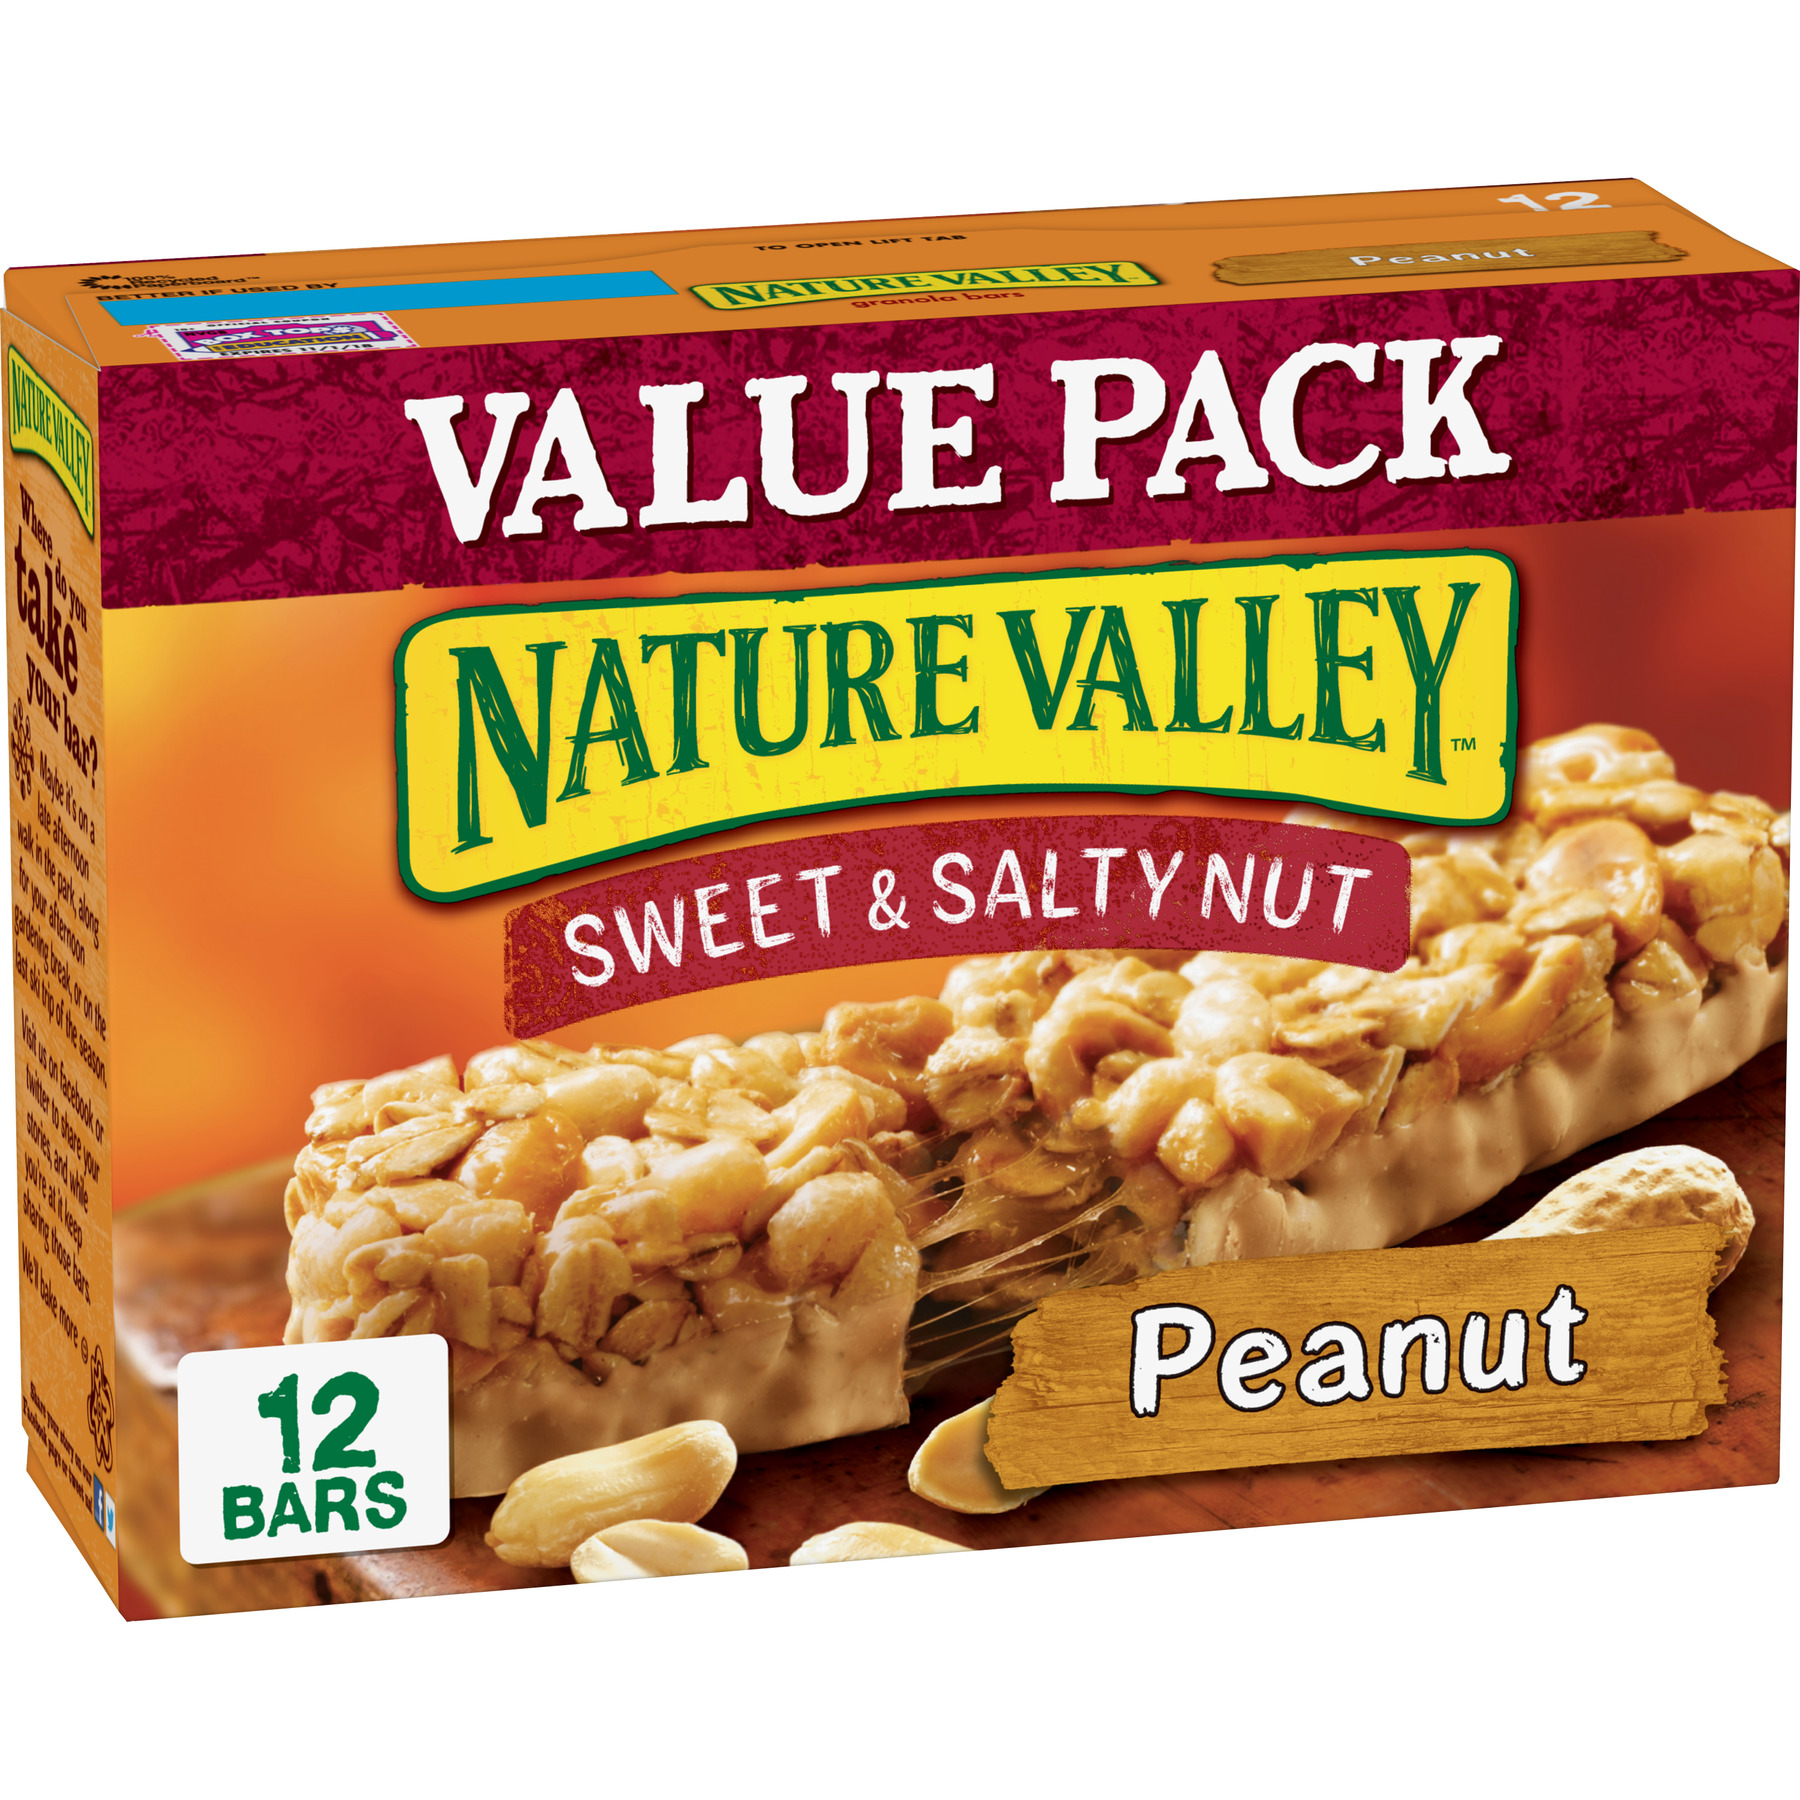 Nature Valley Granola Bars, Sweet and Salty Nut, Peanut, 12 Bars - 1.2 oz